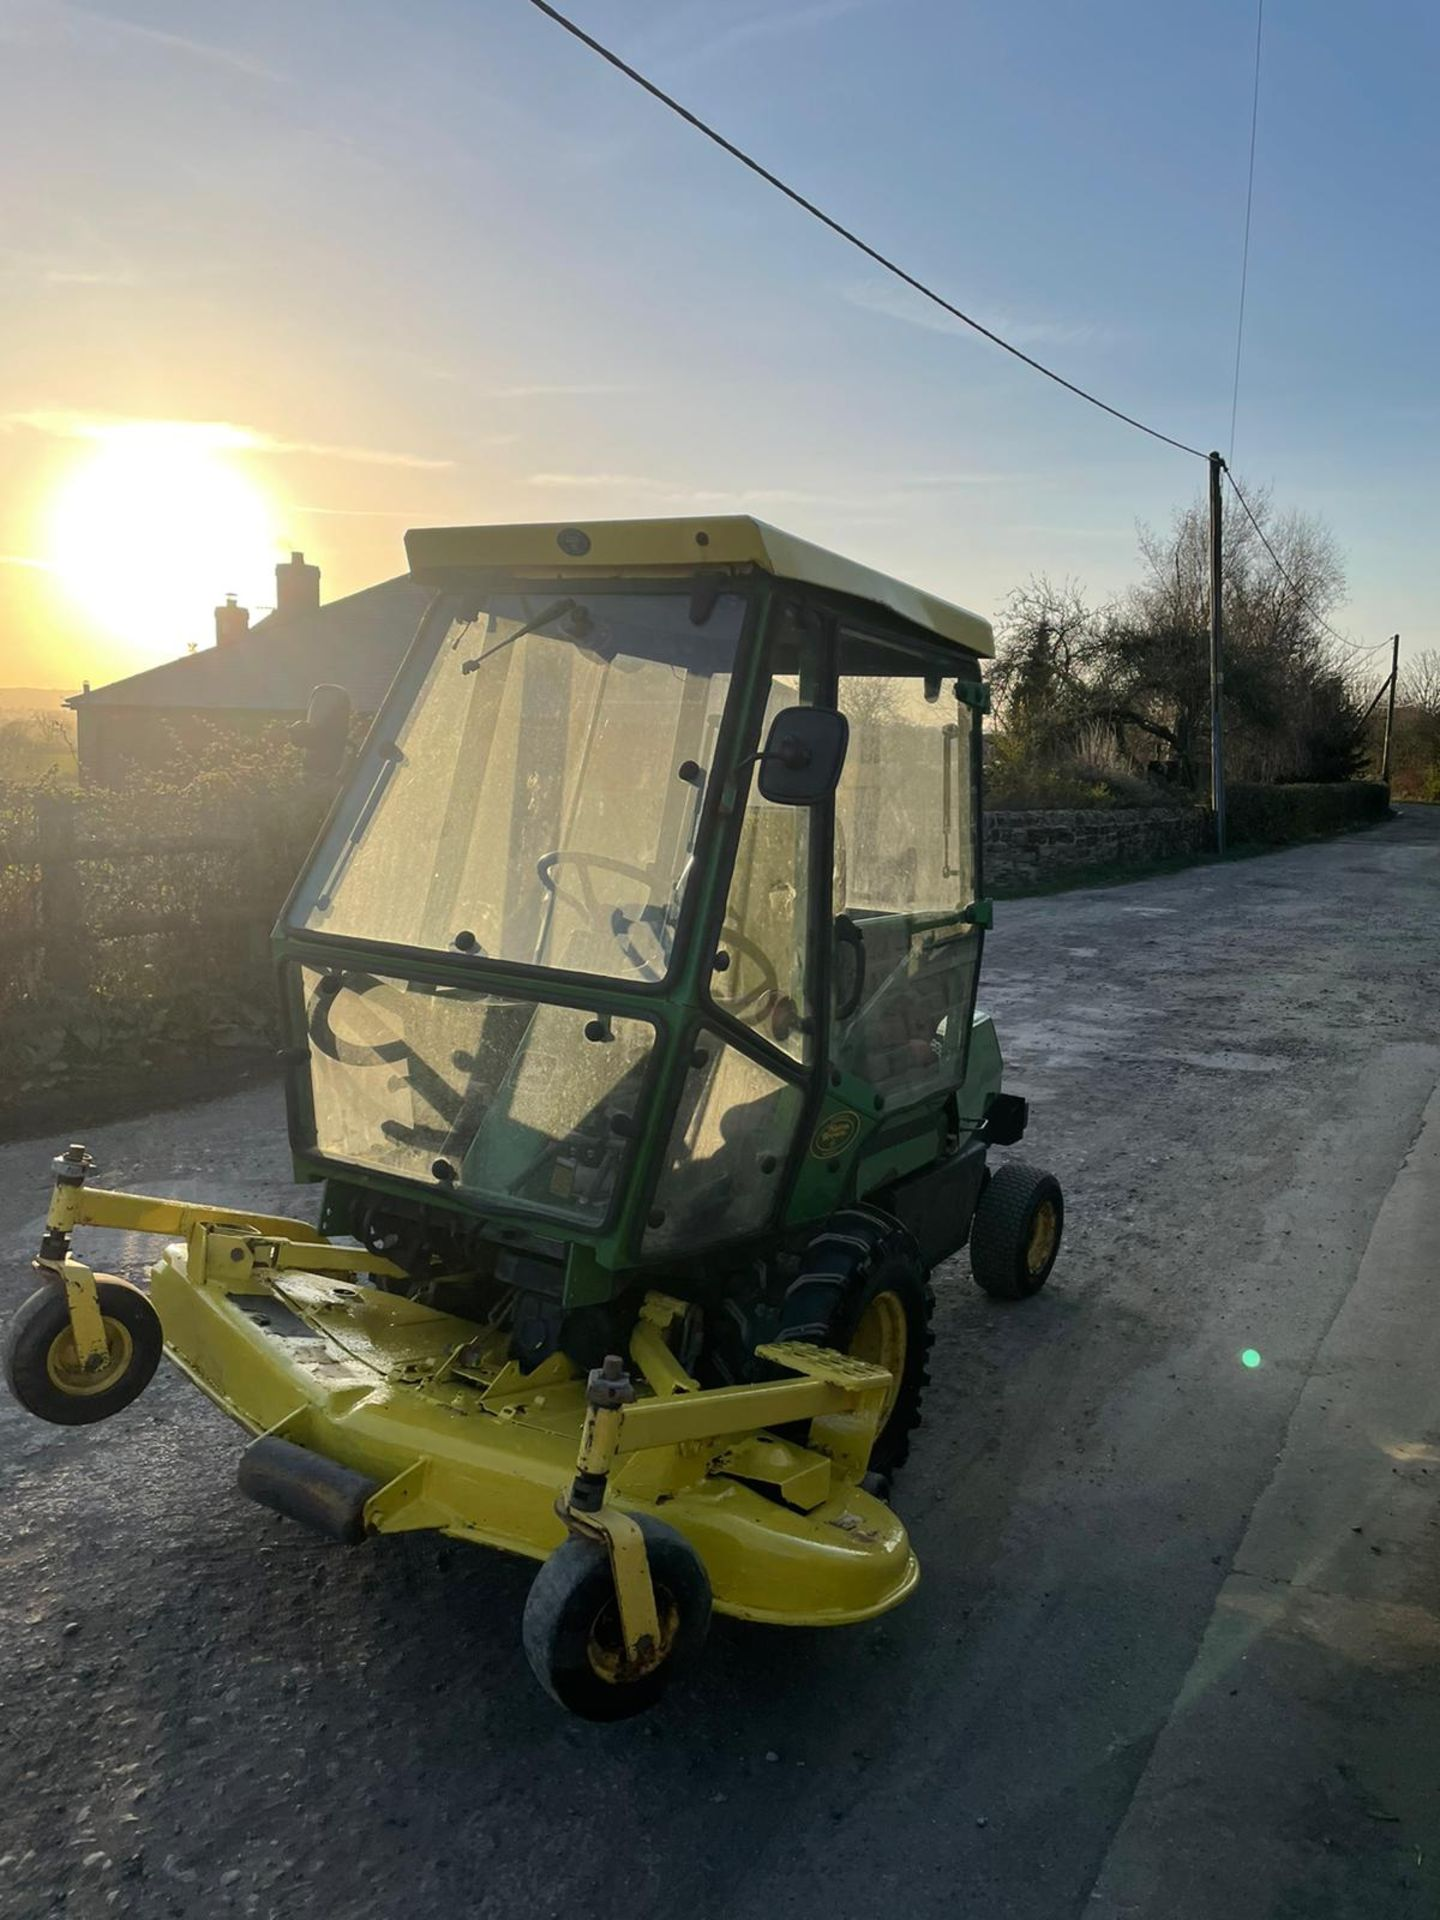 JOHN DEERE OUT FRONT RIDE ON LAWN MOWER, FULL GLASS CAB, ONLY 1603 HOURS *PLUS VAT* - Image 4 of 5